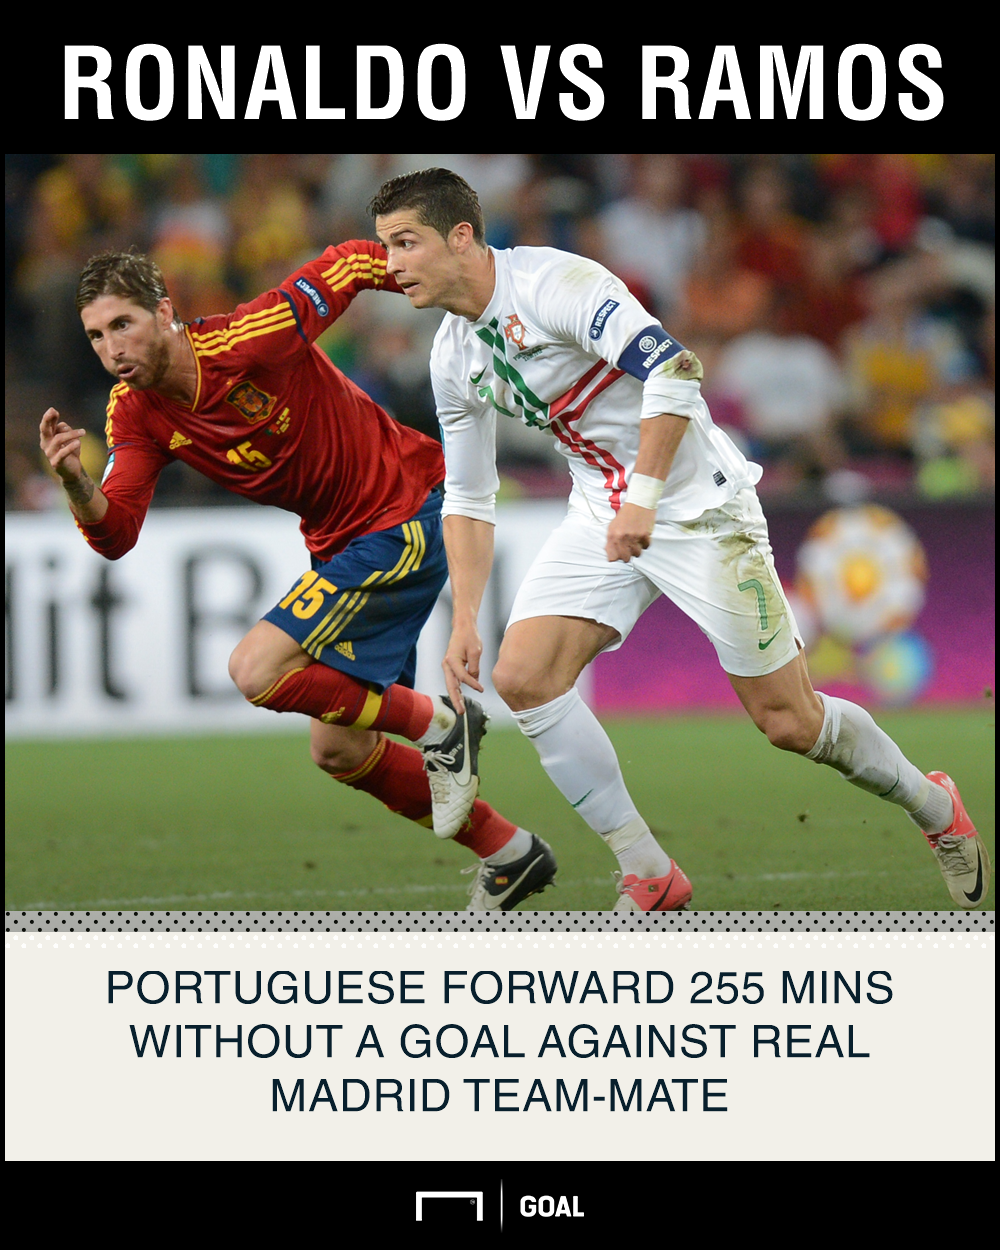 Cristiano Ronaldo Sergio Ramos Spain Portugal 255 minutes without a goal